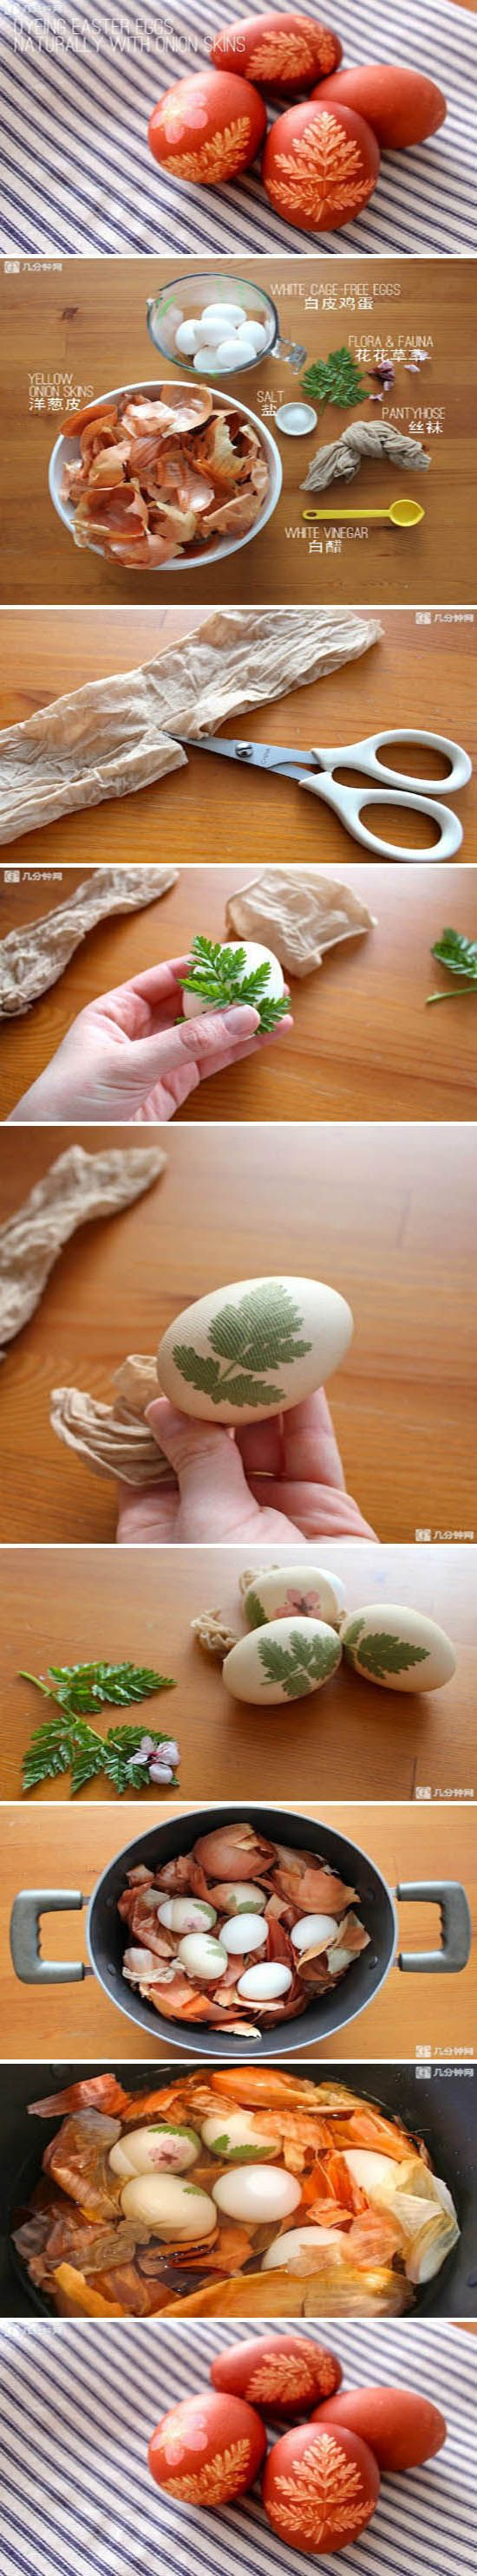 Diy Eggs  | DIY & Crafts Tutorials